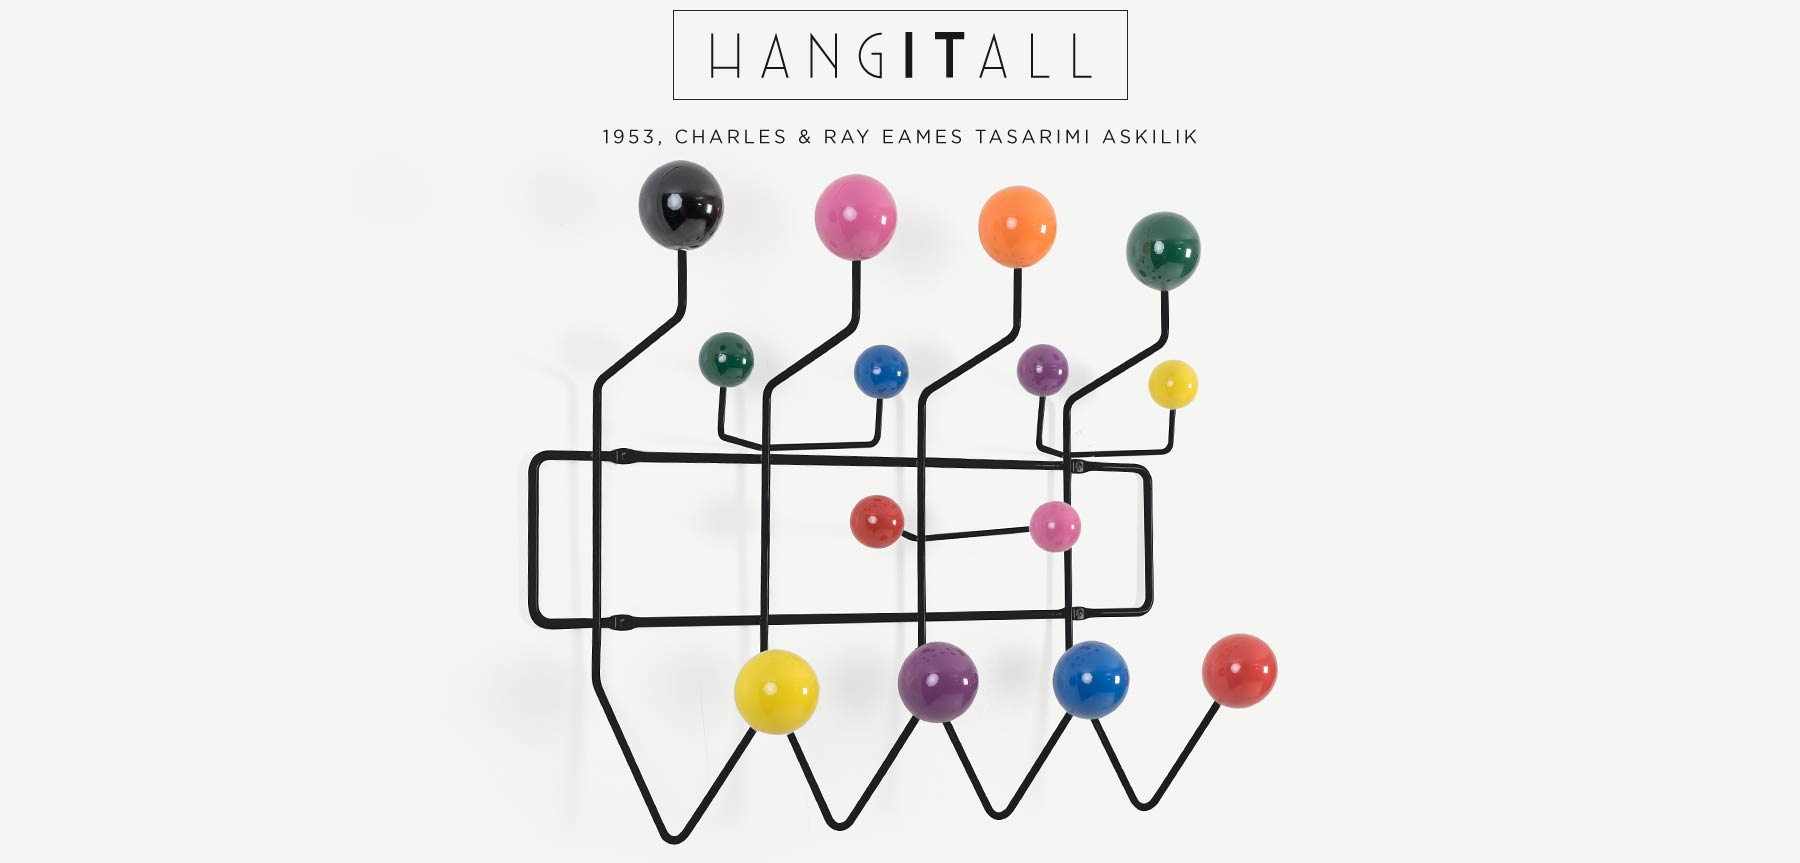 CHARLES EAMES HANG IT ALL RENKLİ TOPLU SİYAH ASKILIK'in resmi